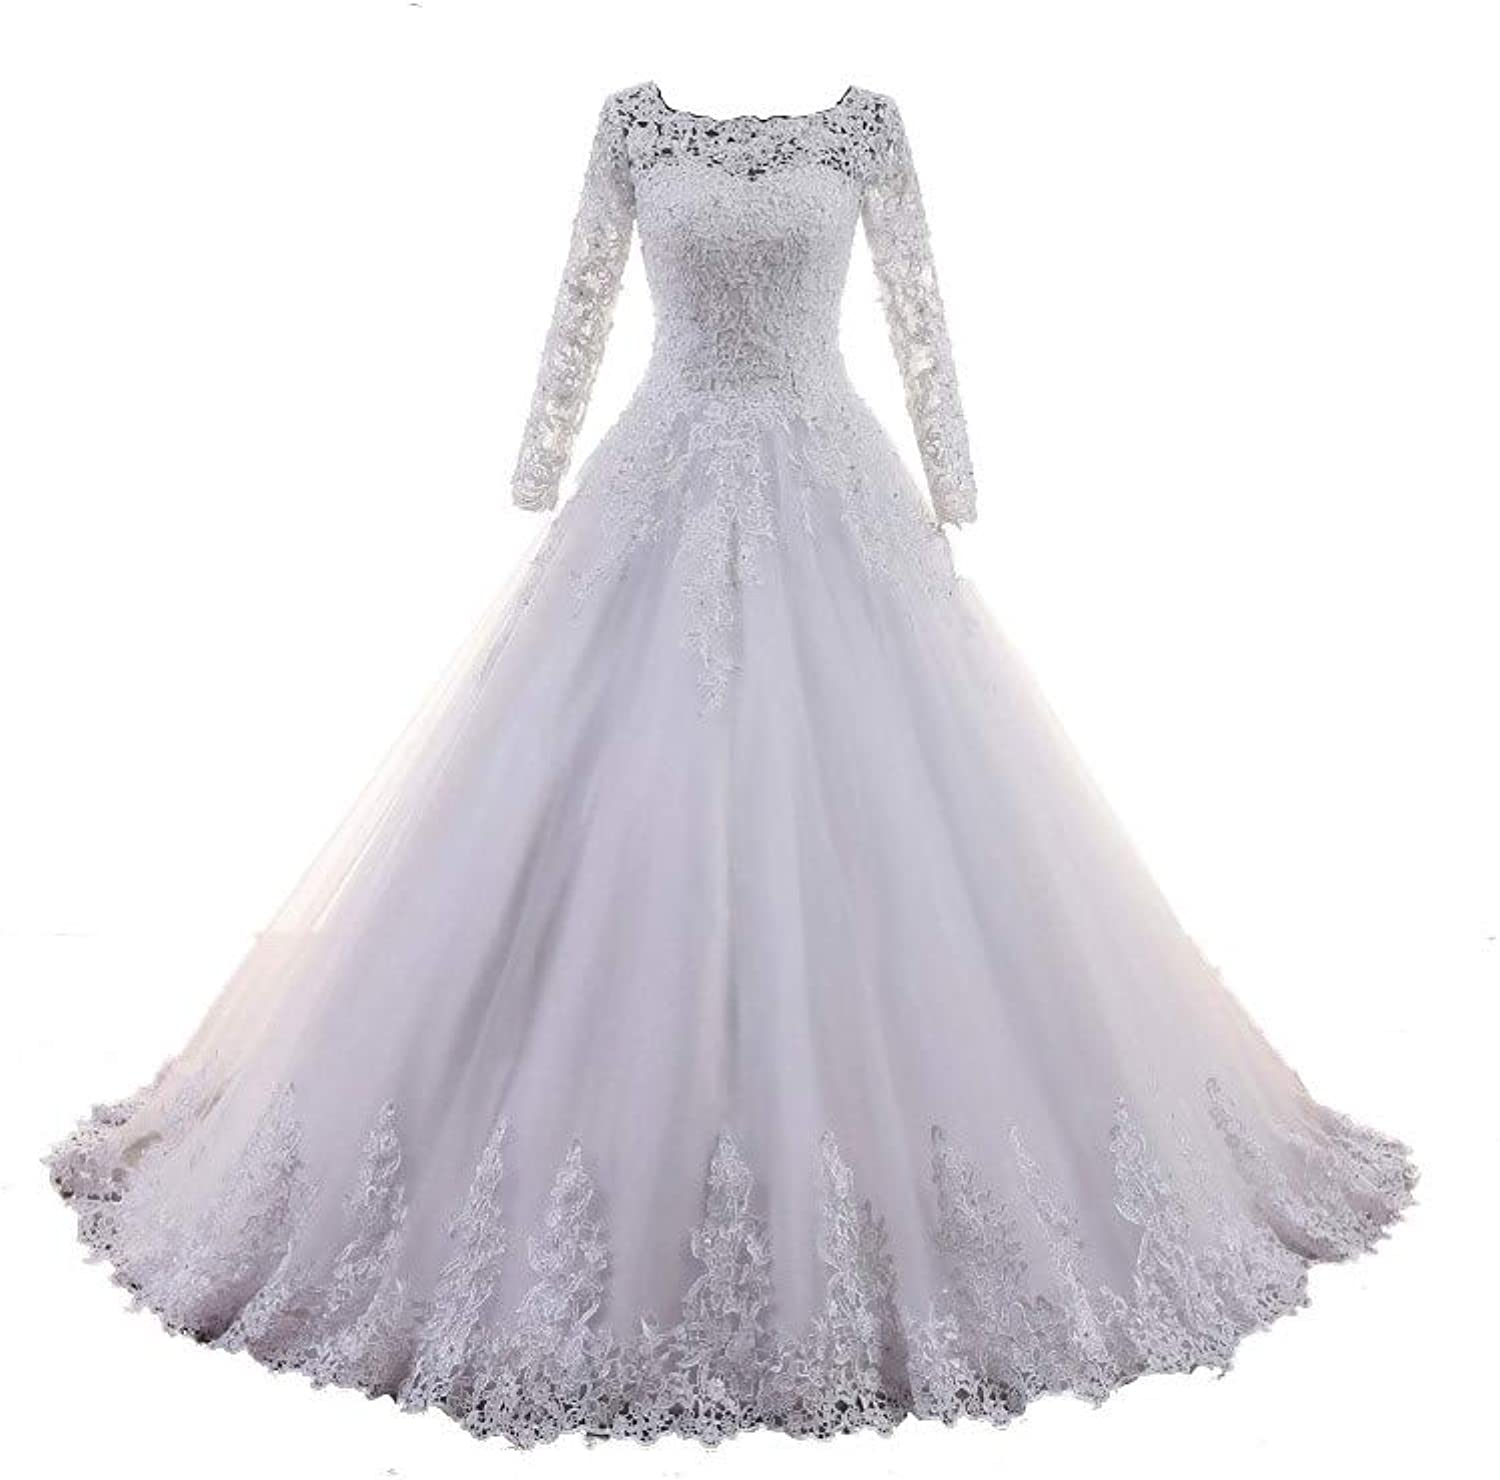 FIGHOUOR Wedding Dress 2019 Embroidery Lace Princess Wedding Gowns Vestidos De Novia